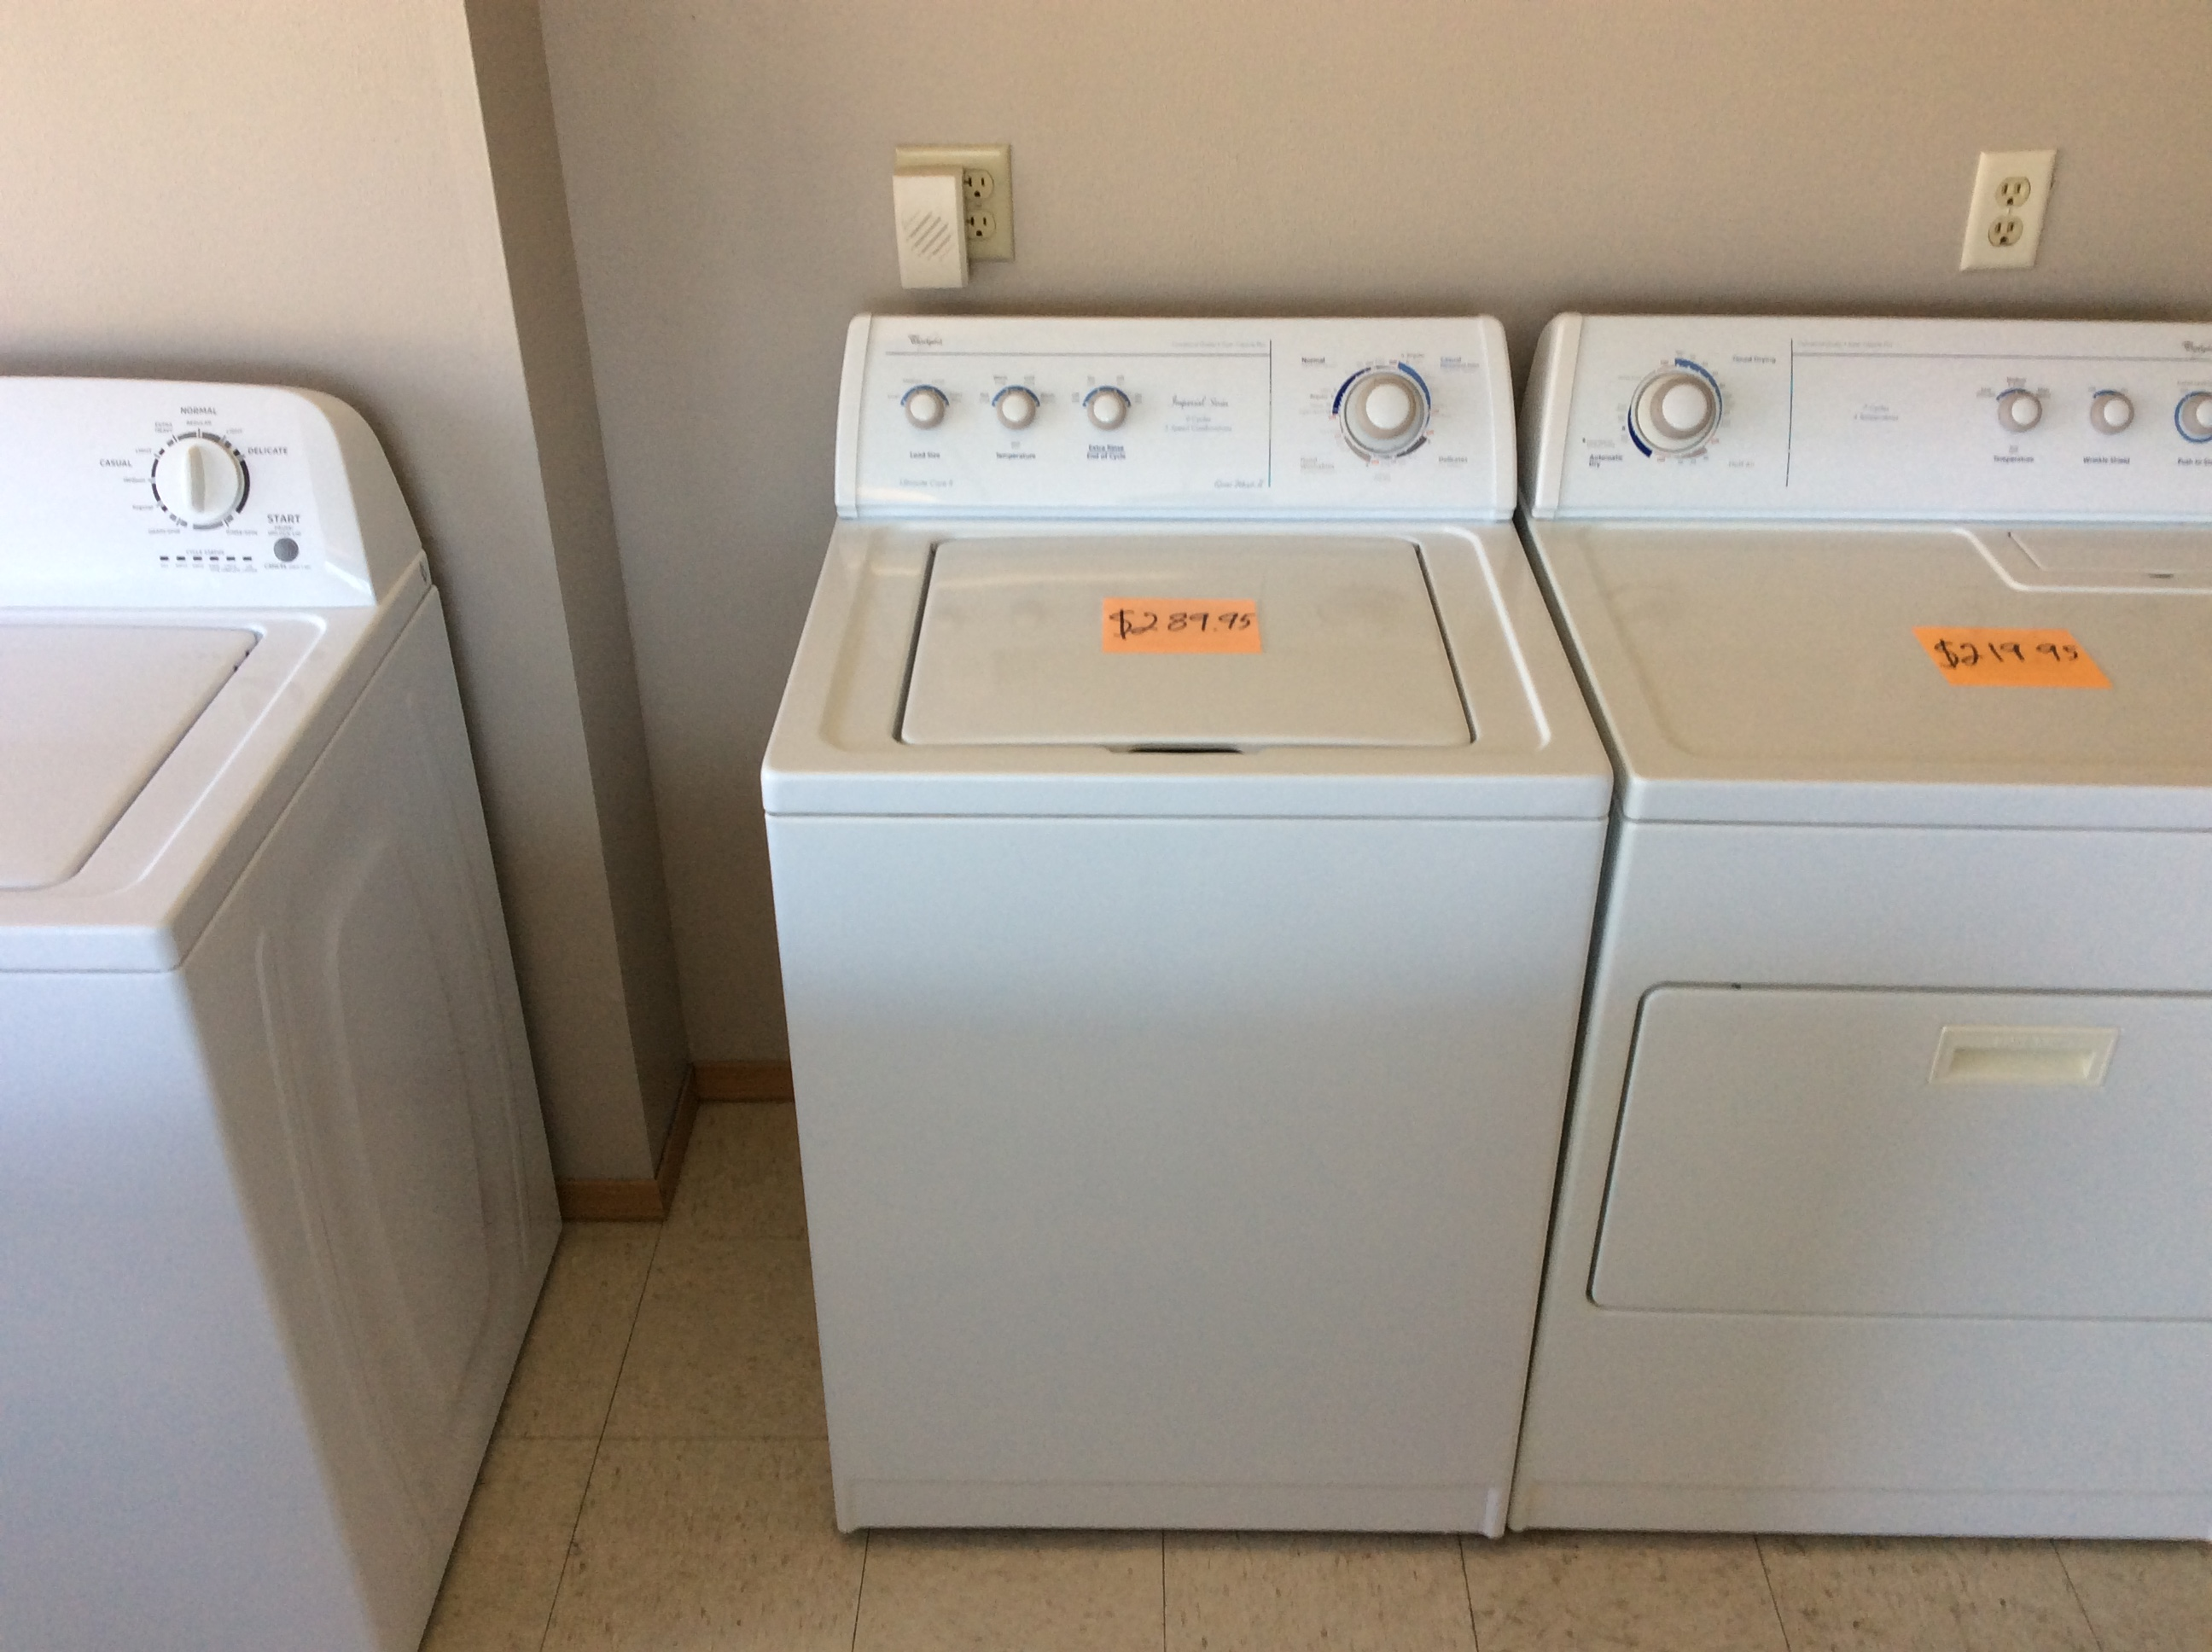 Whirlpool Top Load Washer Kelbachs